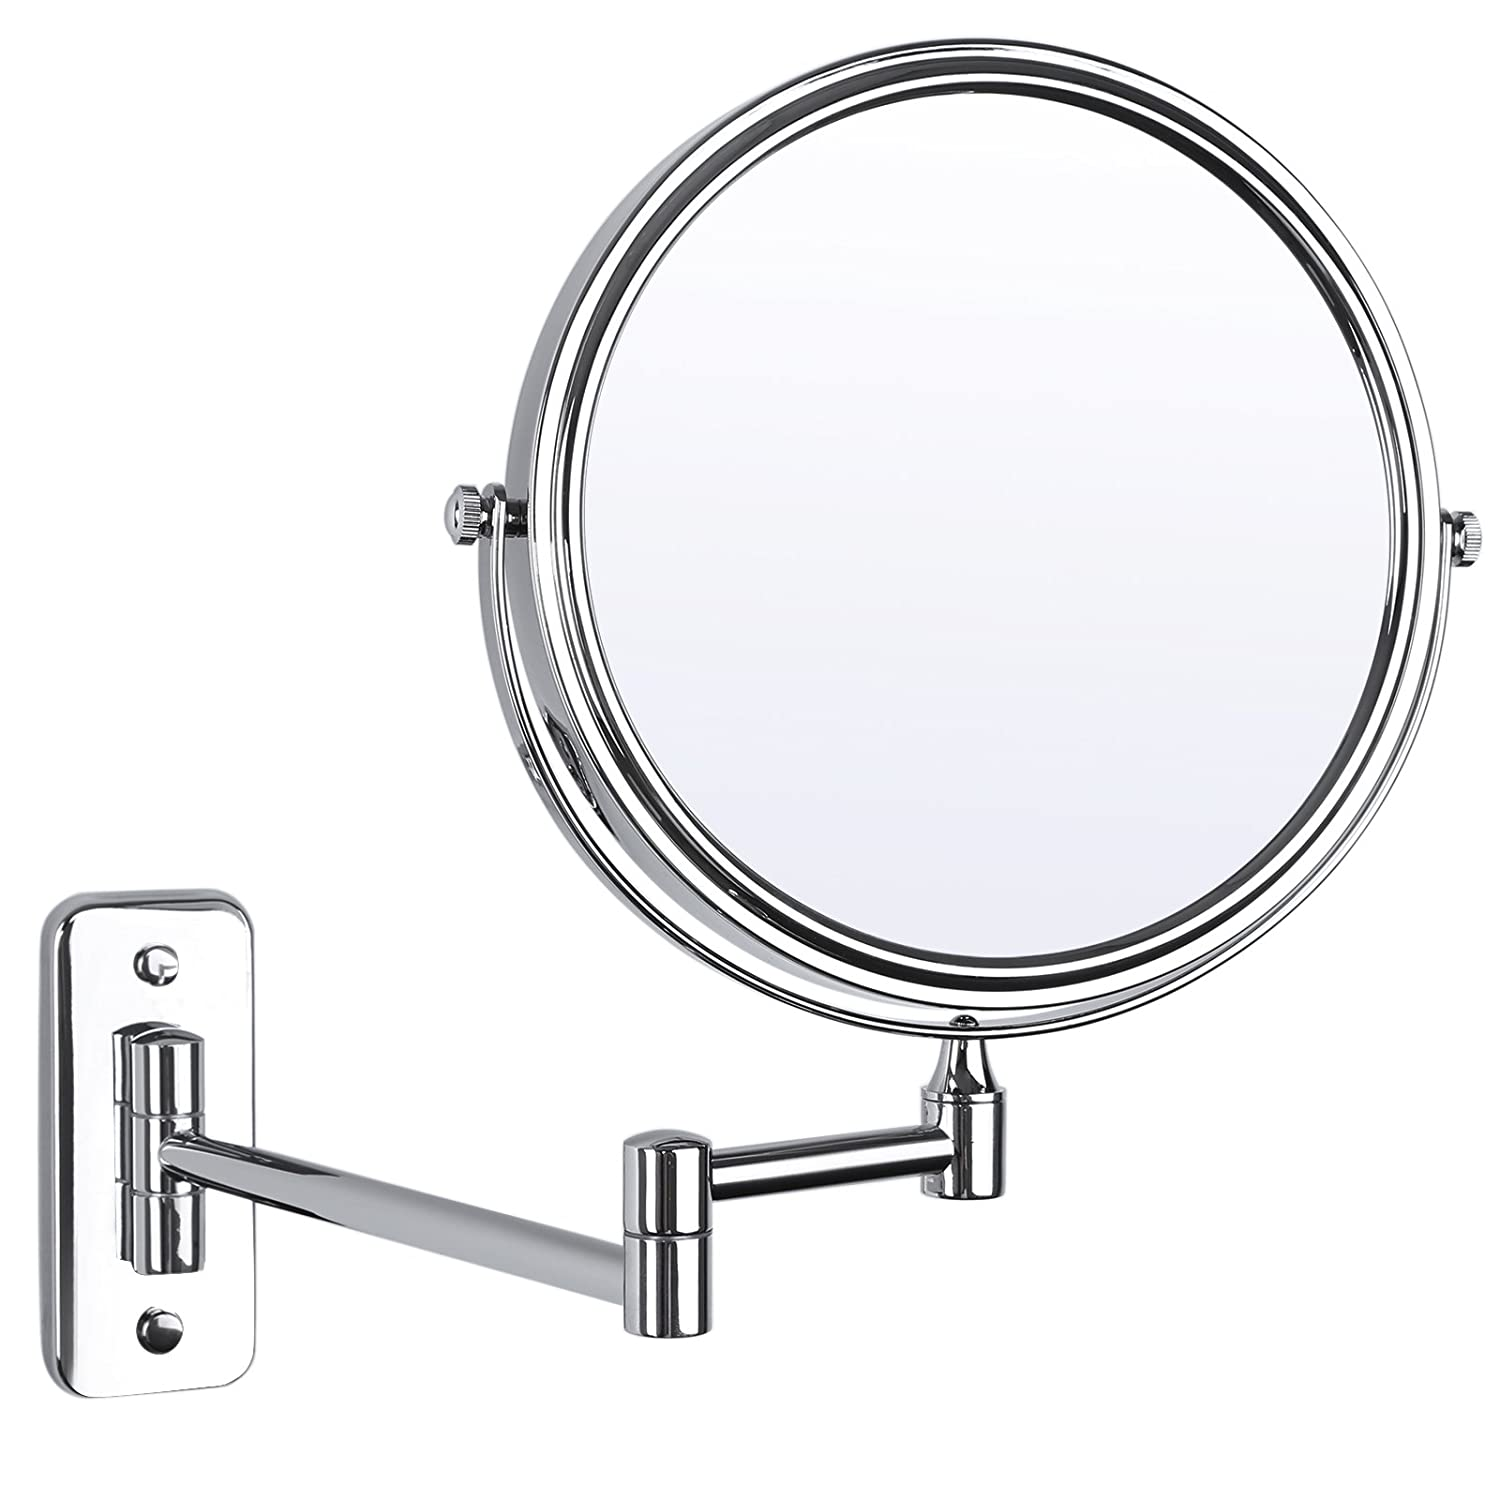 SONGMICS 7x Magnifying Wall Mount Makeup Mirror 8-Inch Two-Sided Extendable Bathroom Vanity Mirror Chrome UBBM713